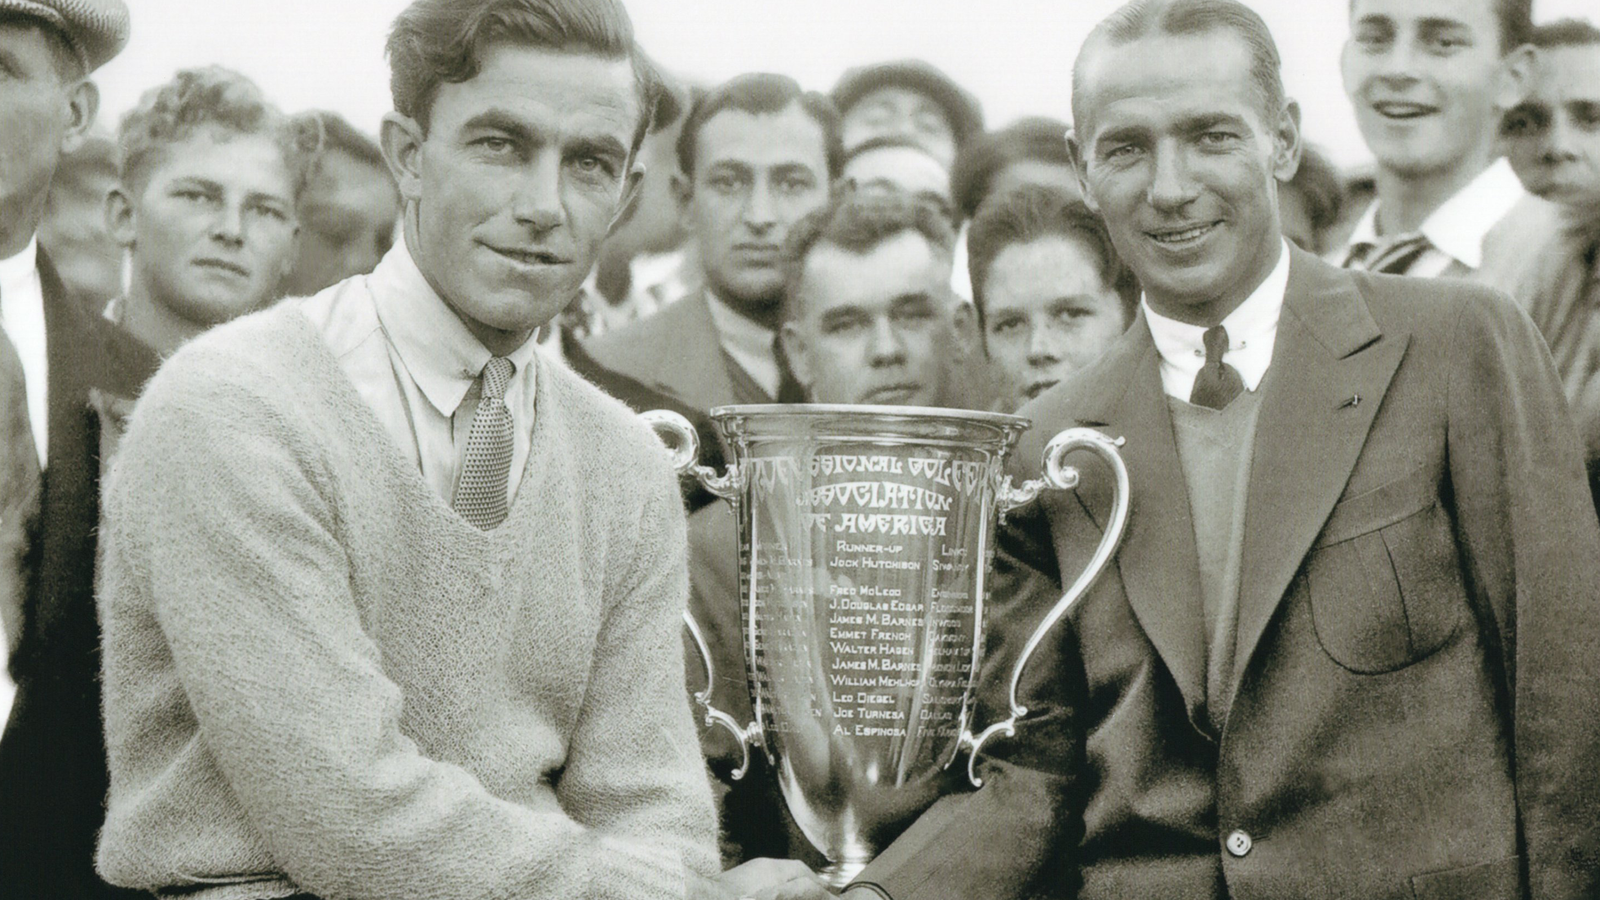 Johnny Farrell and 1929 PGA Champion Leo Diegel posing for the first time with the new PGA Championship trophy.